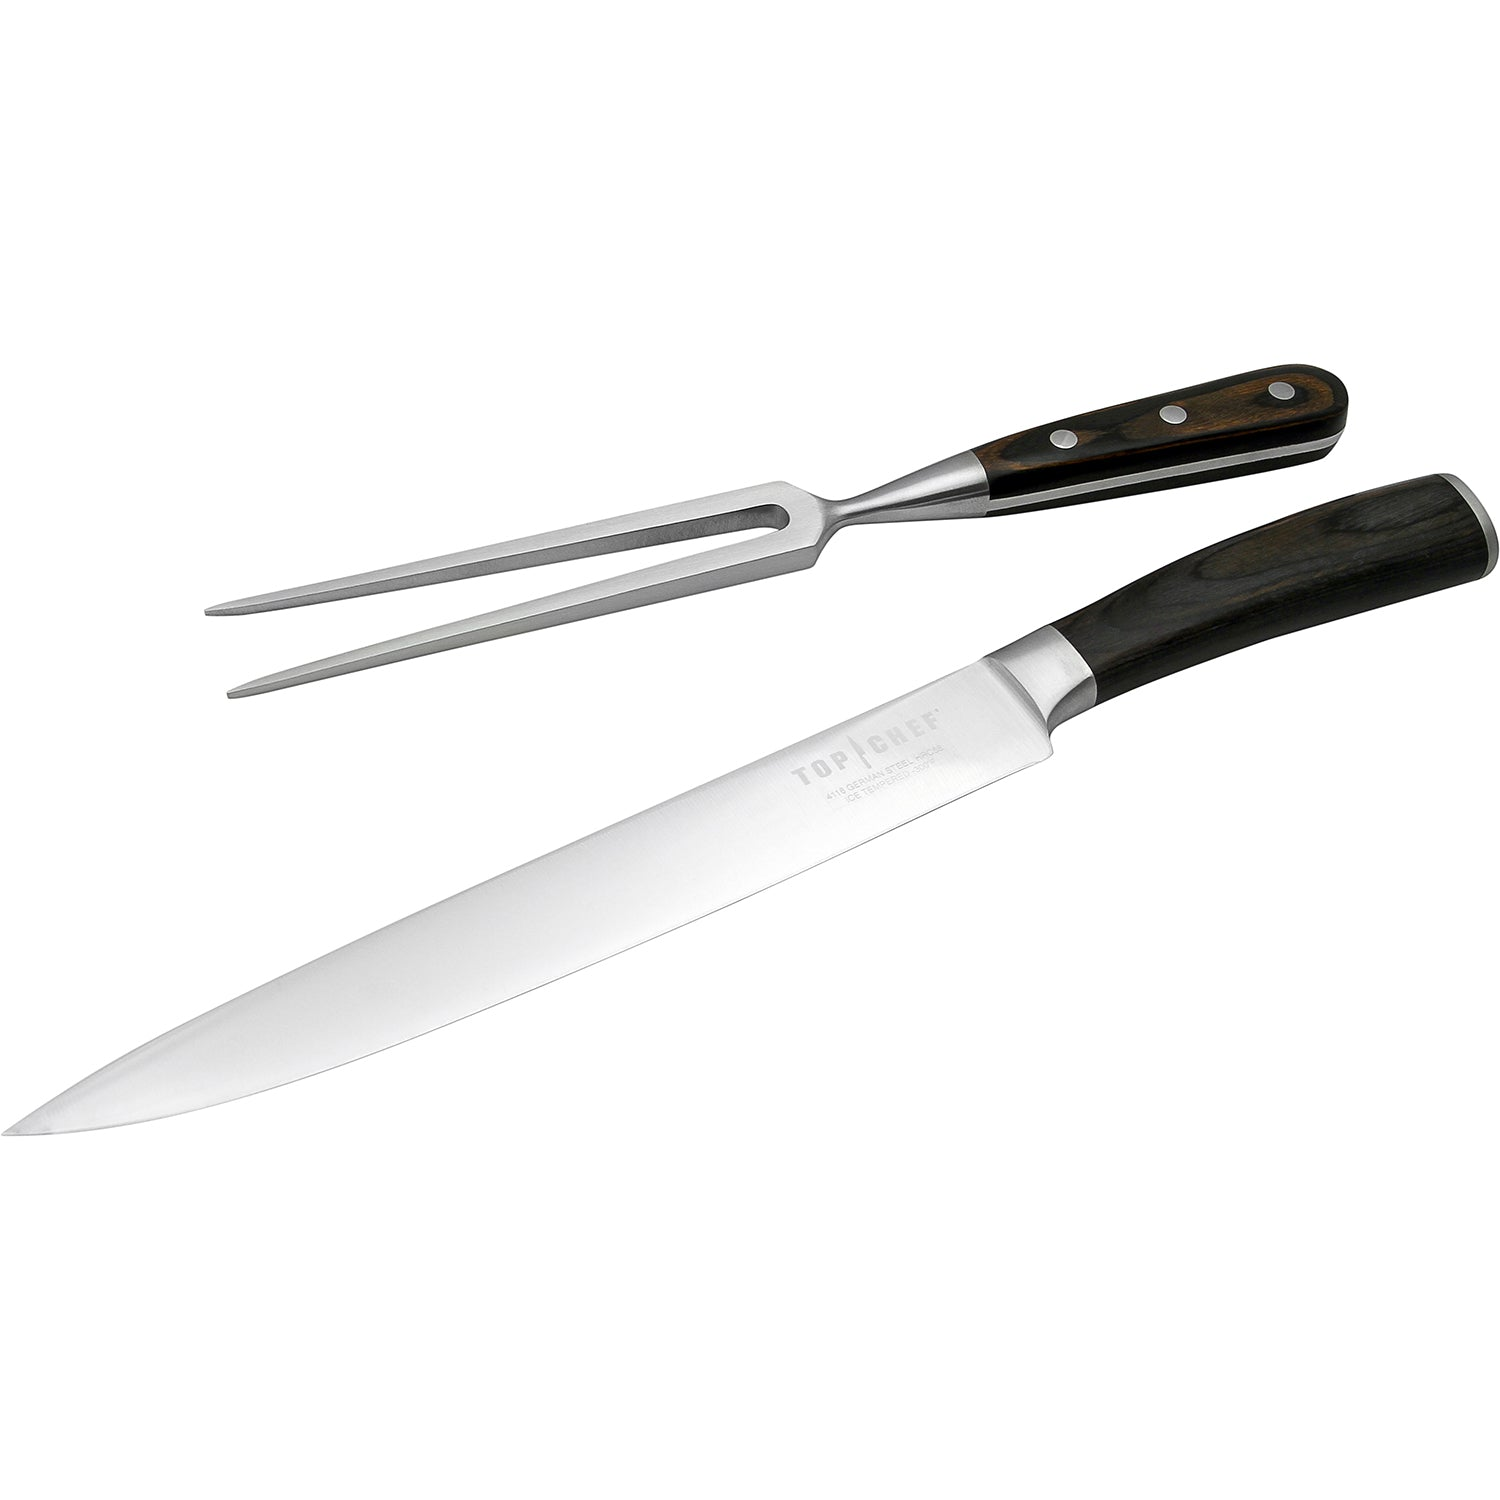 Top Chef 174 Dynasty 2 Piece Carving Set Top Chef Cutlery